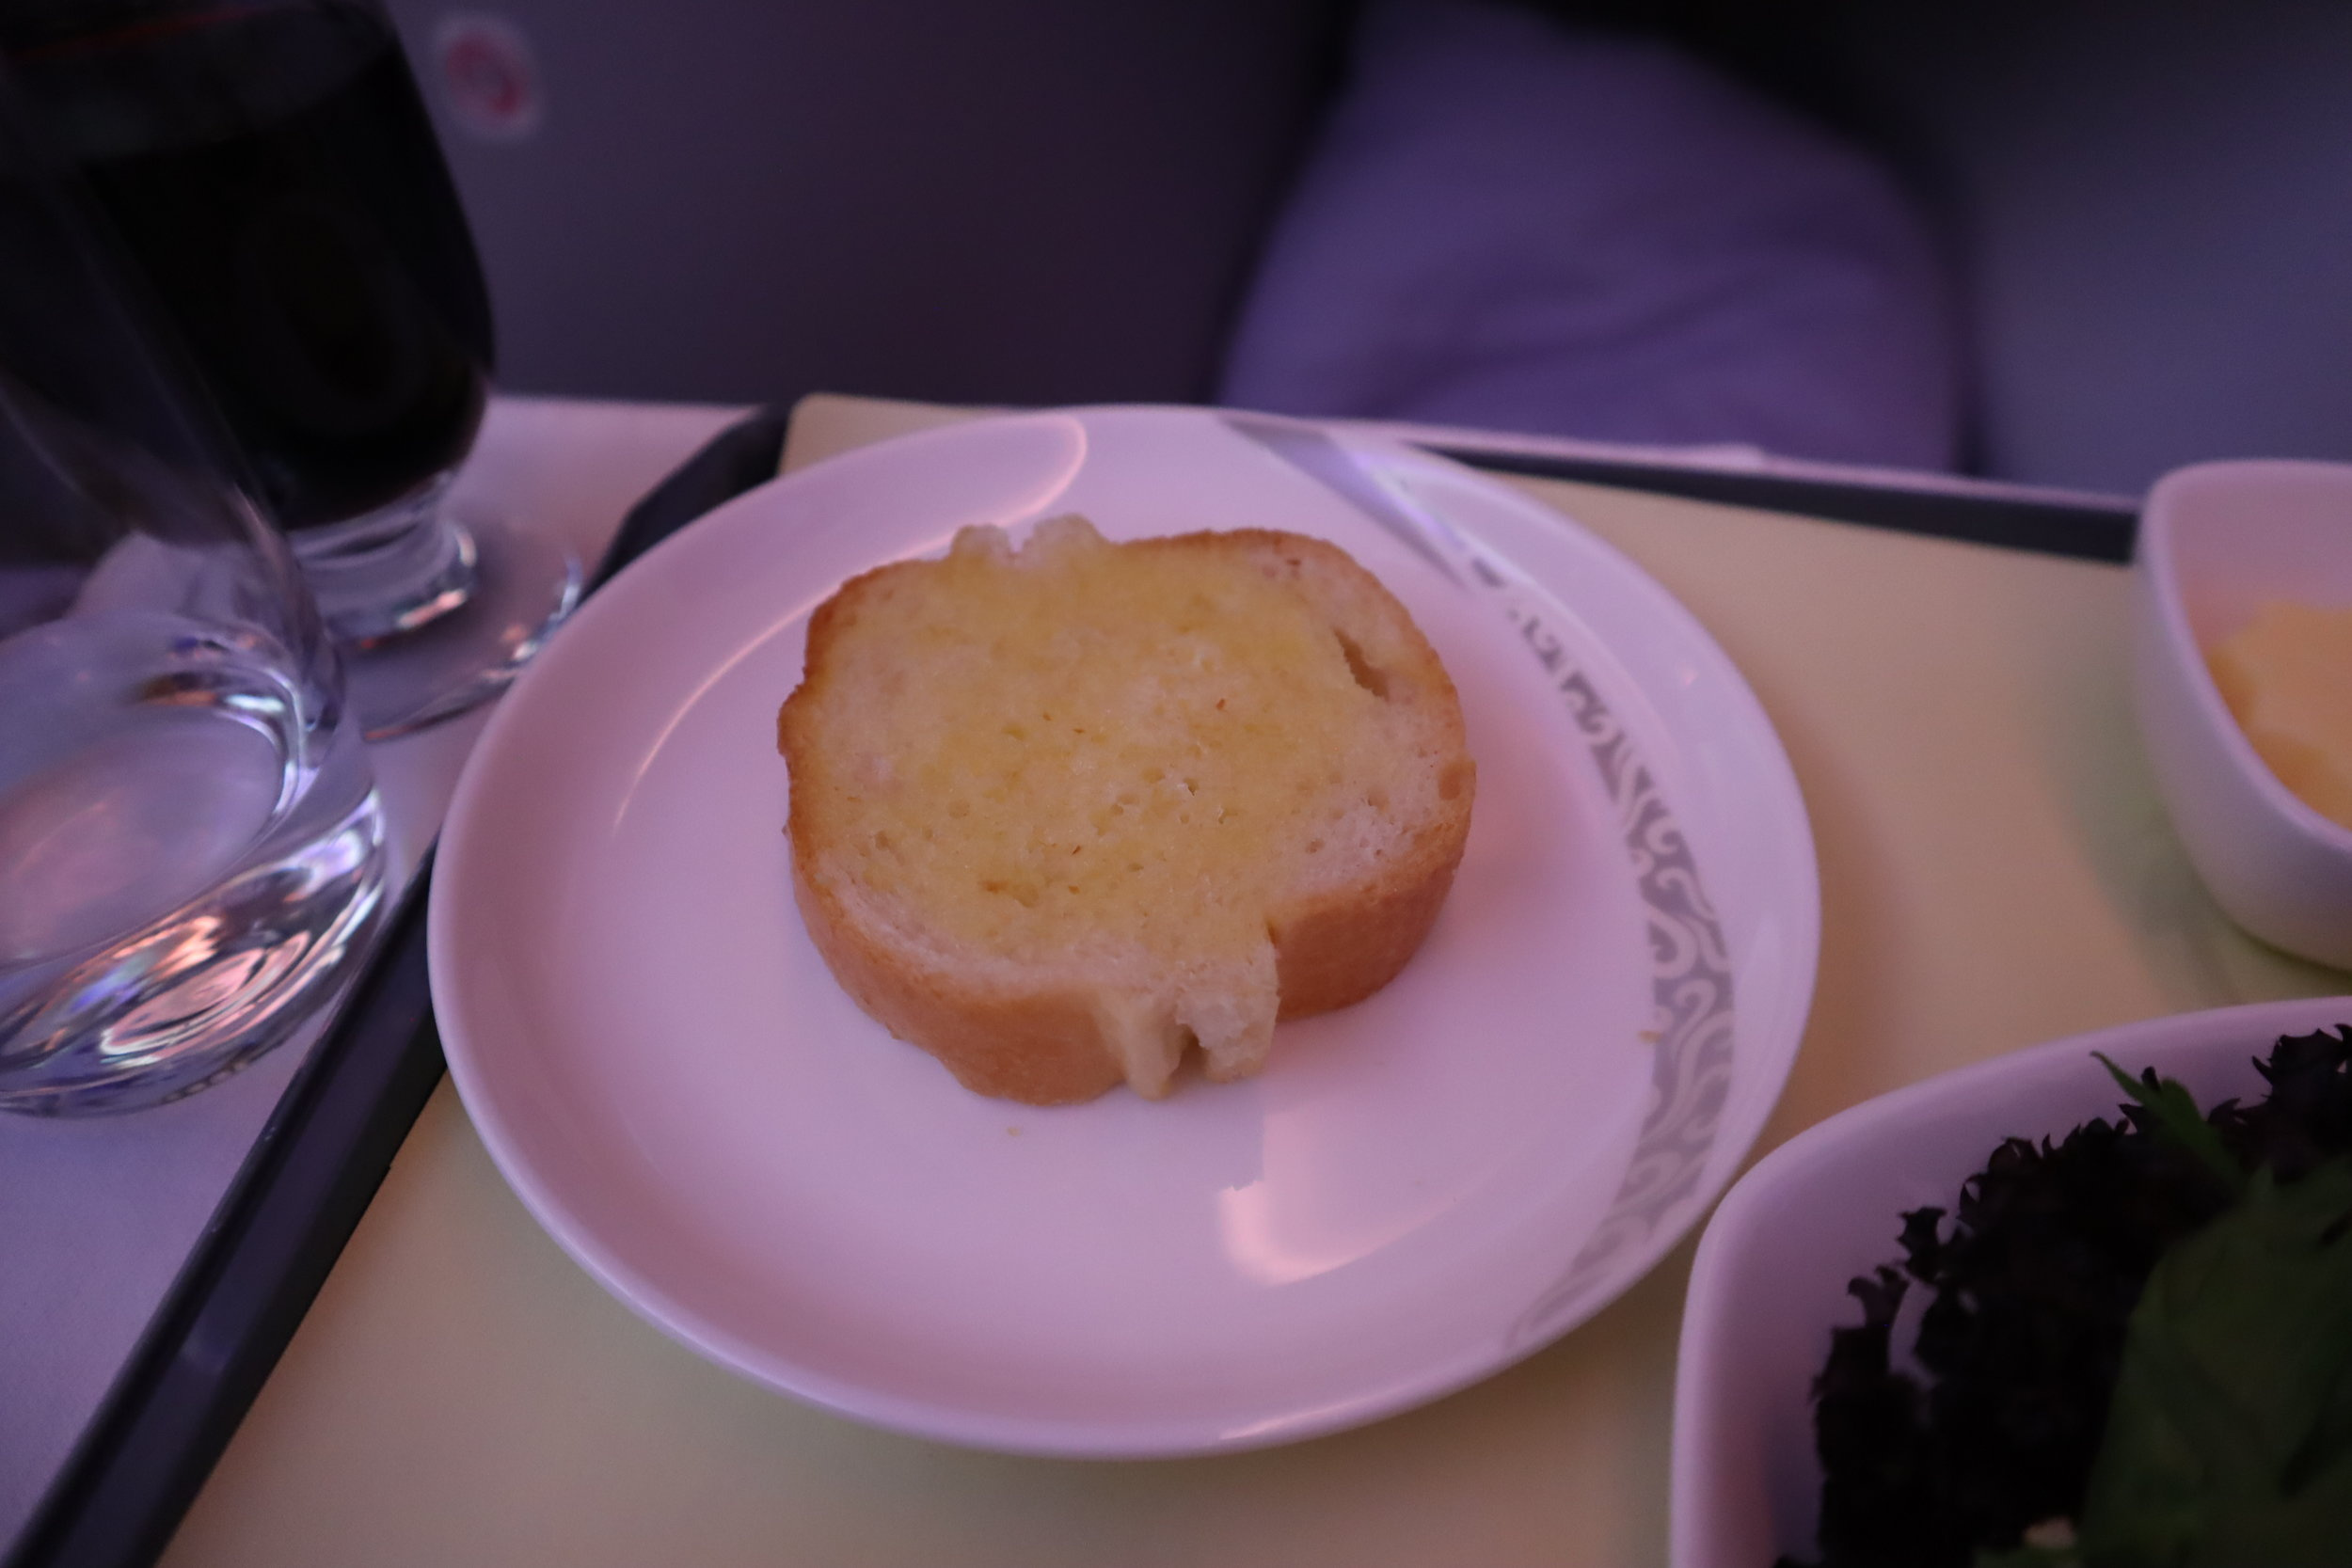 Air China business class – Garlic bread